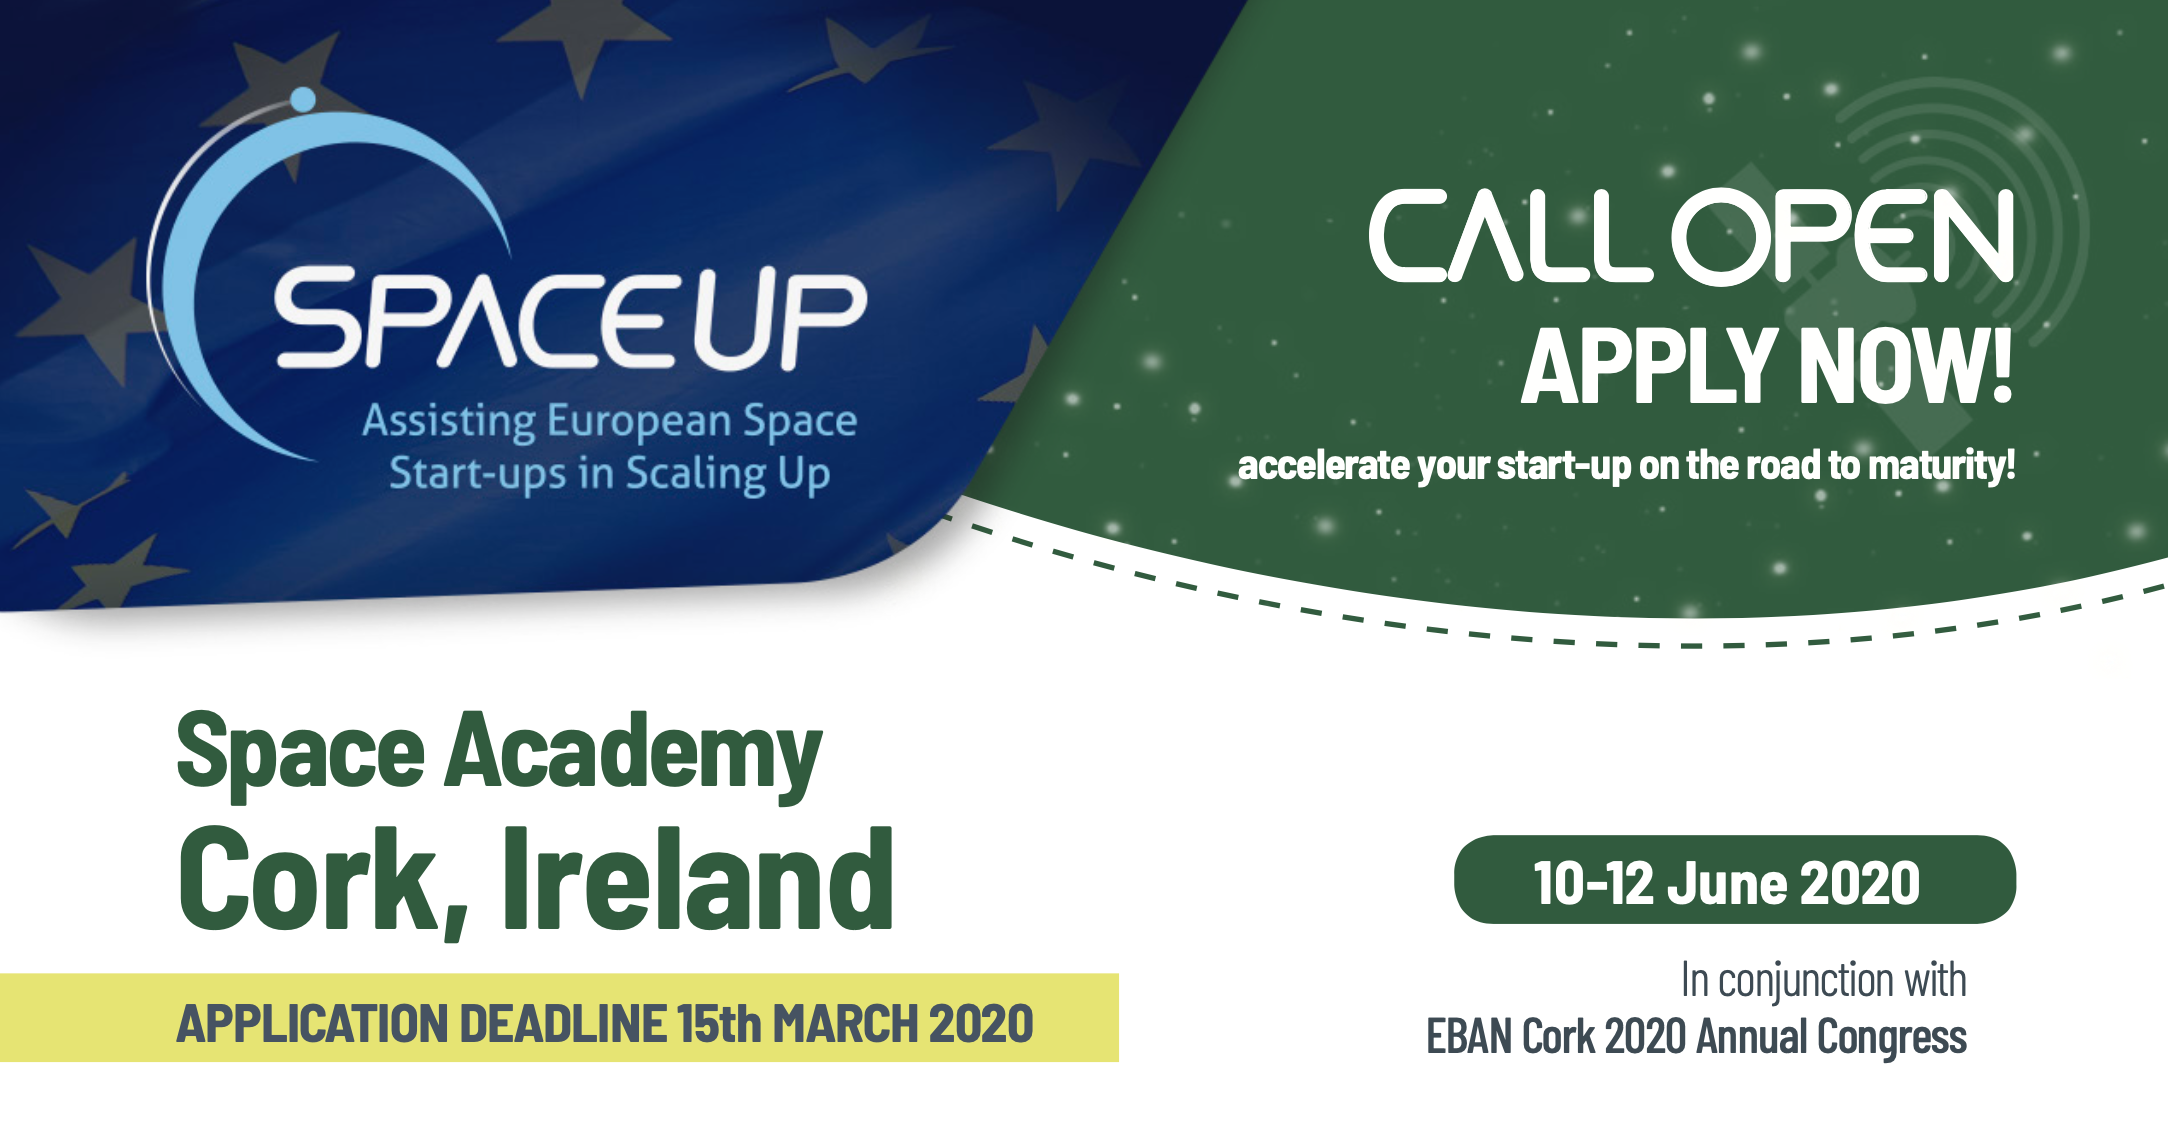 SpaceUp Ireland - IBS Consulting